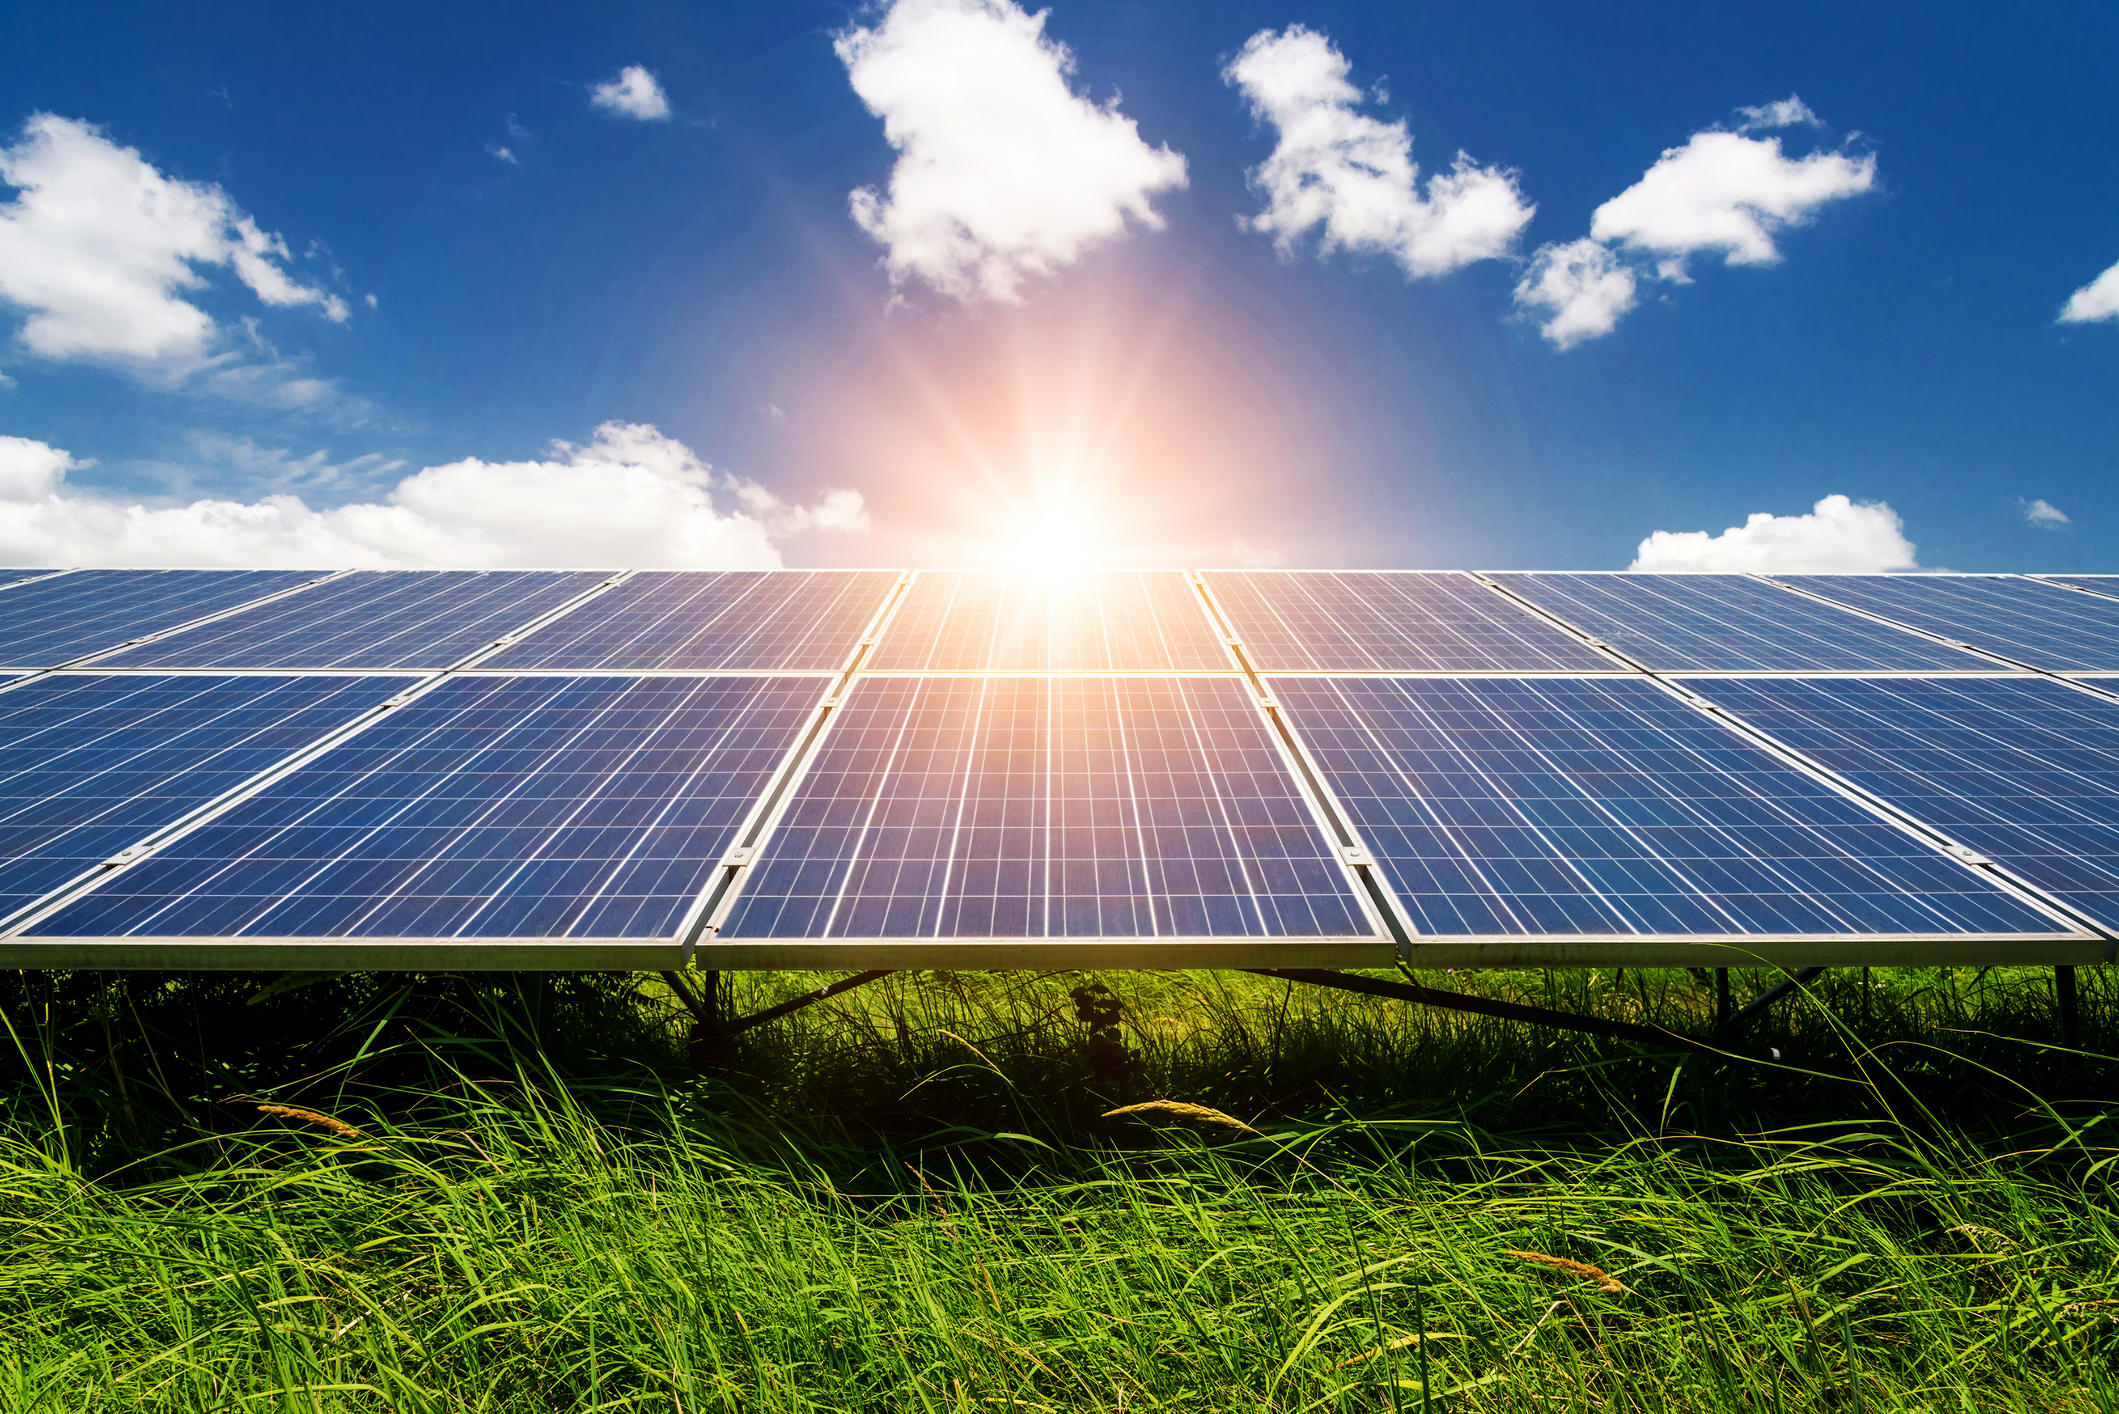 Discover the Best Solar Companies Today